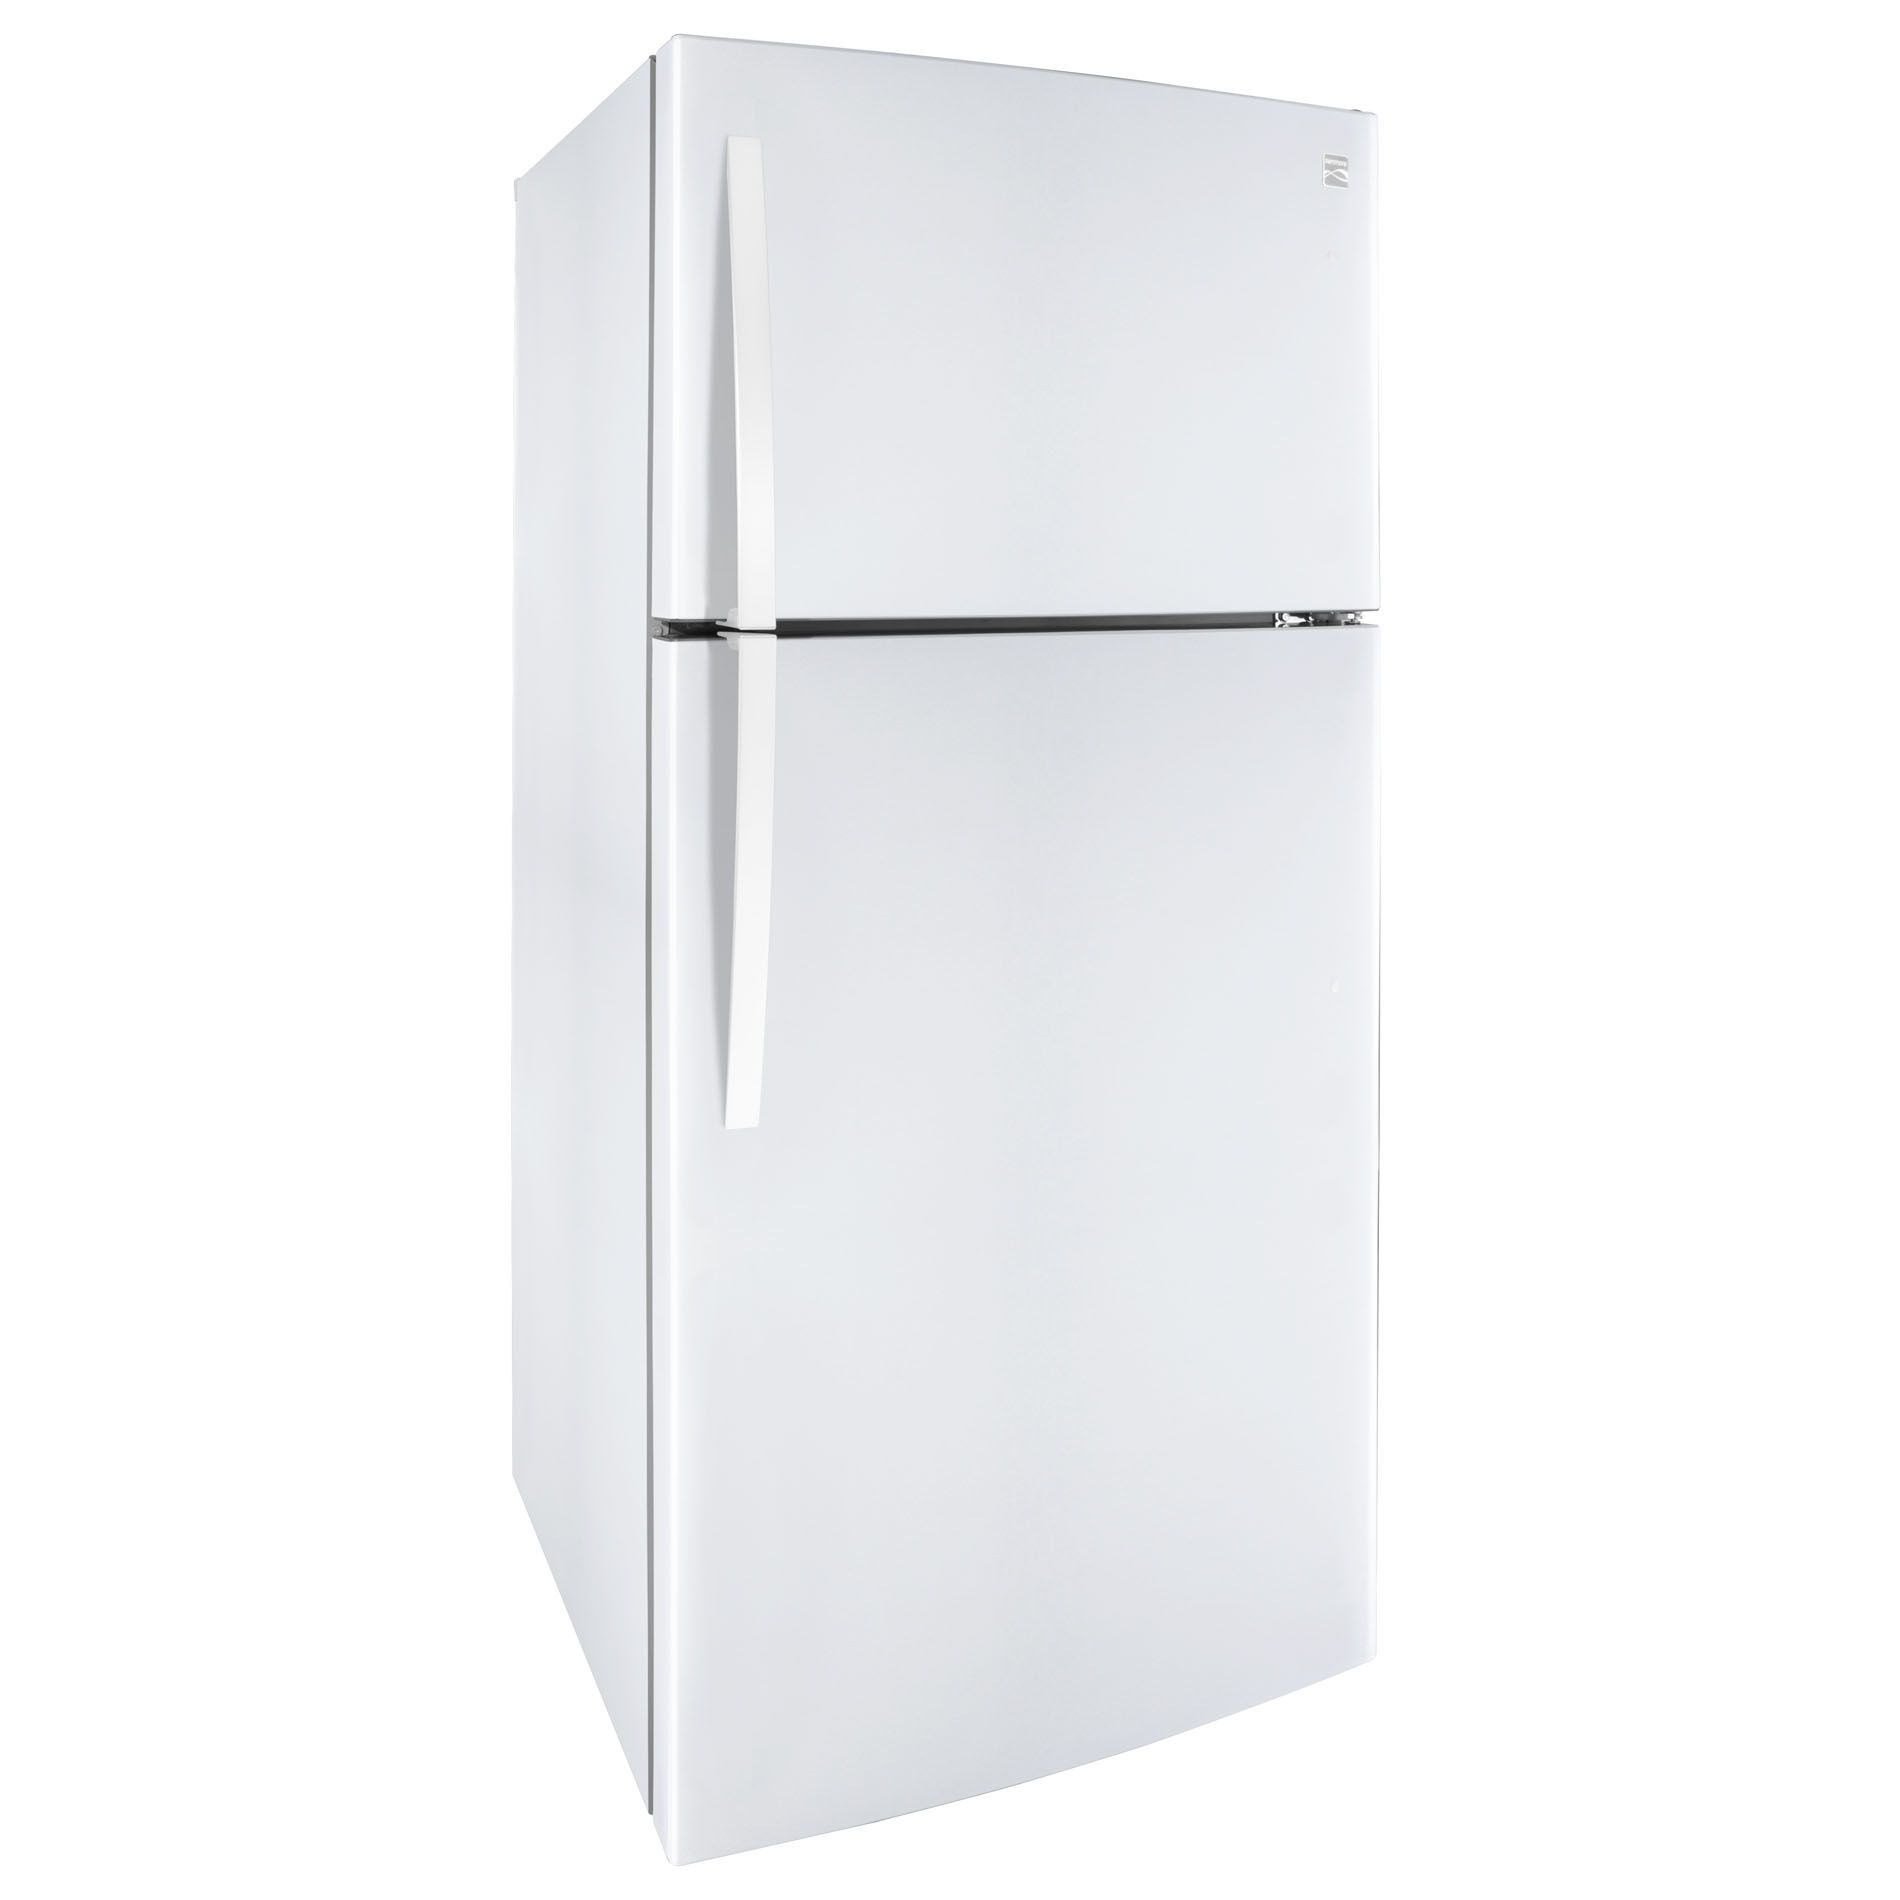 Kenmore 24 cu. ft. Top-Freezer Refrigerator w/ Icemaker- White